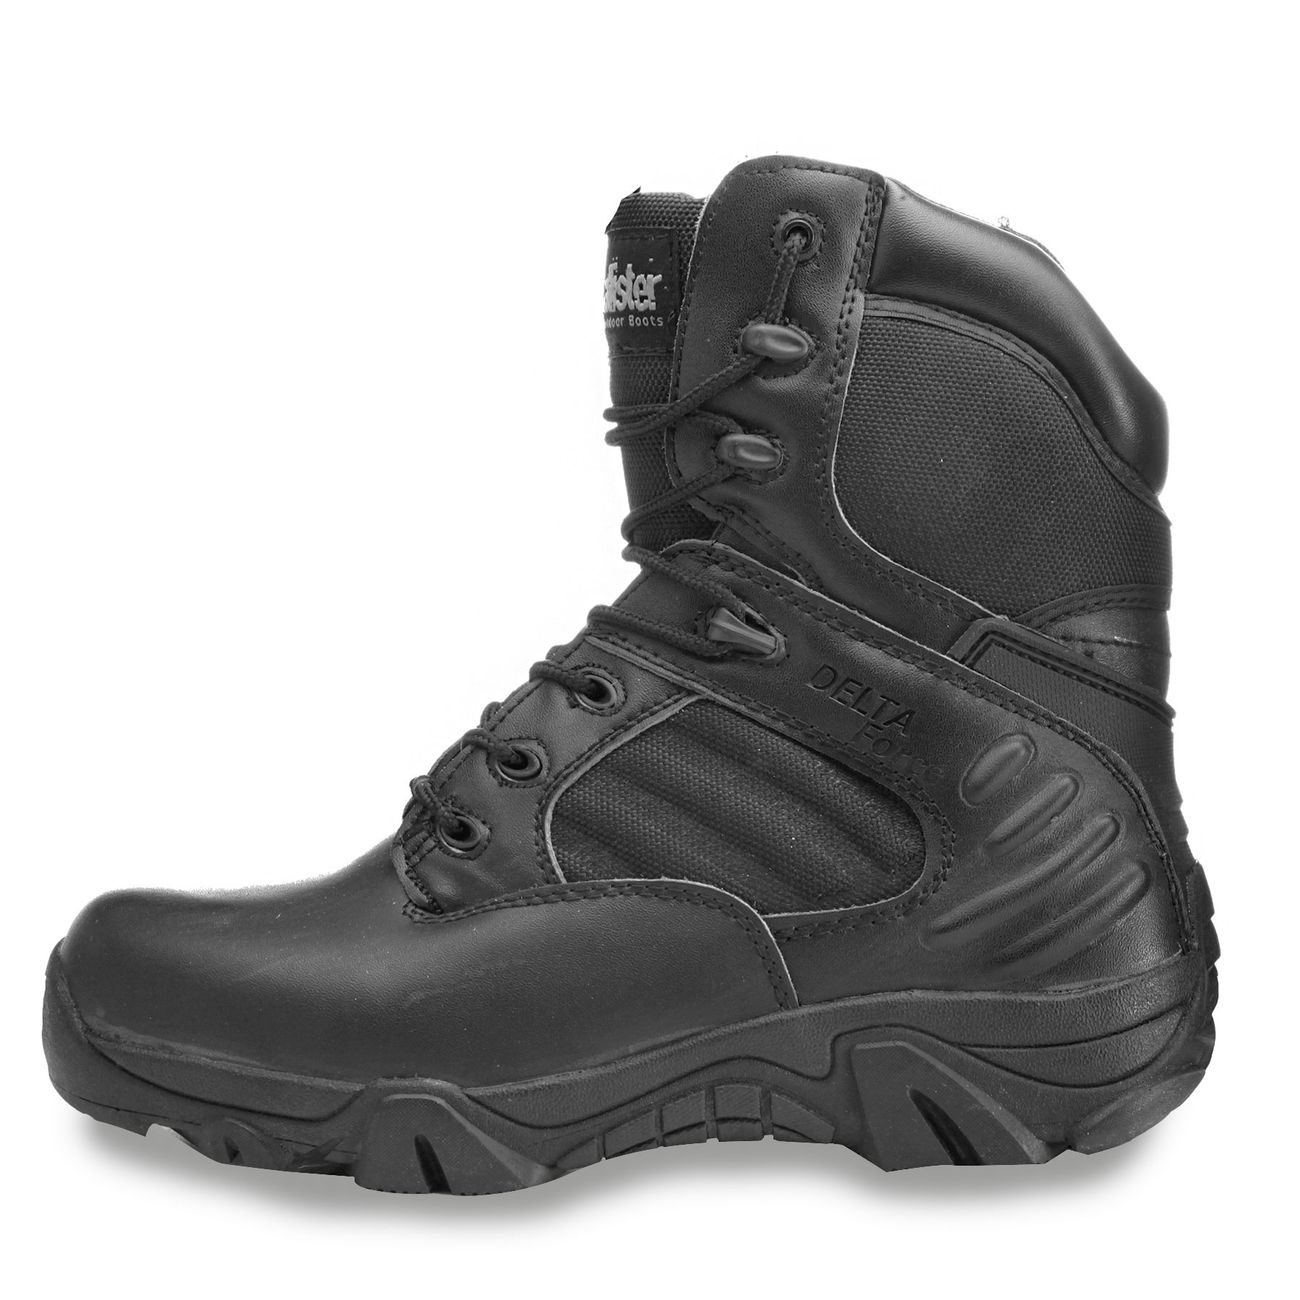 McAllister Stiefel Delta Force Tactical Outdoor Boots schwarz 0